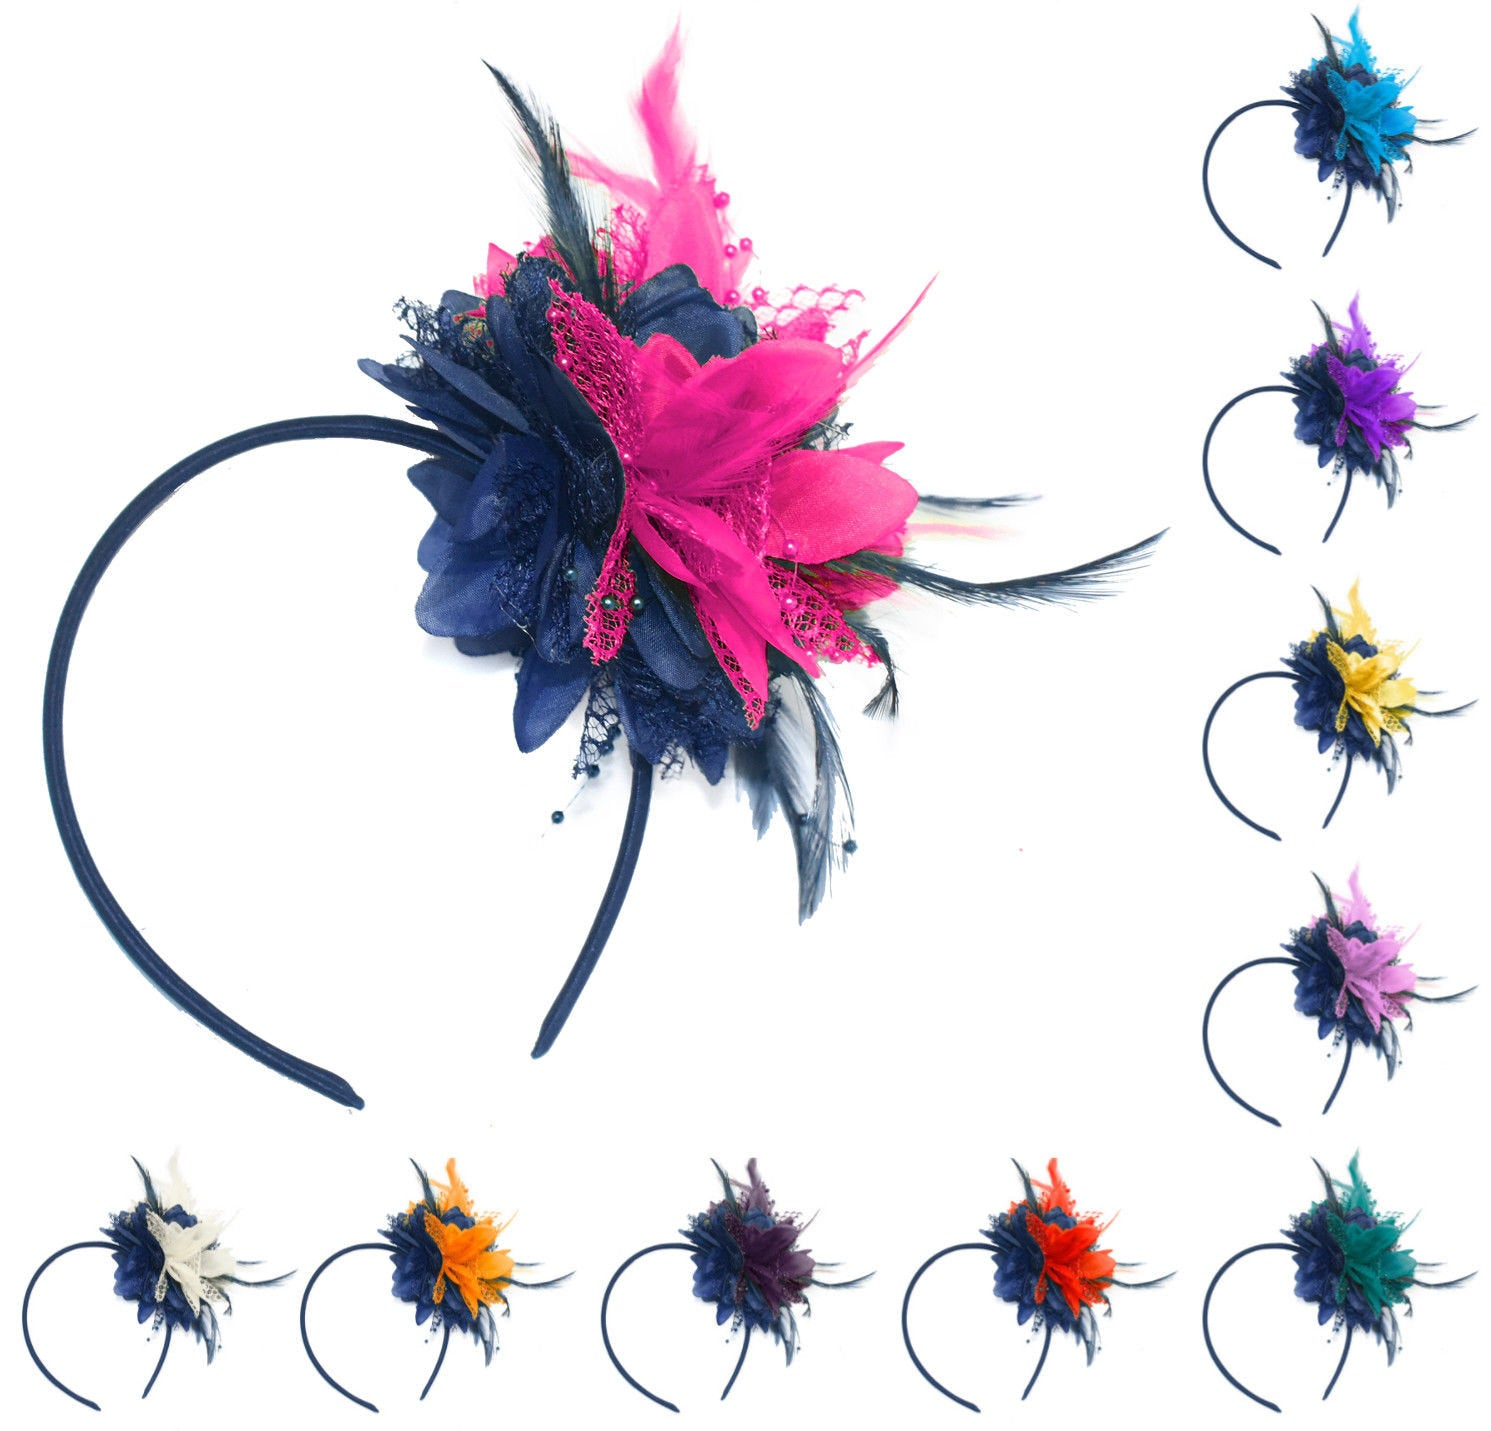 Caprilite Bespoke Fascinator Corsage for Weddings and Ascot Races